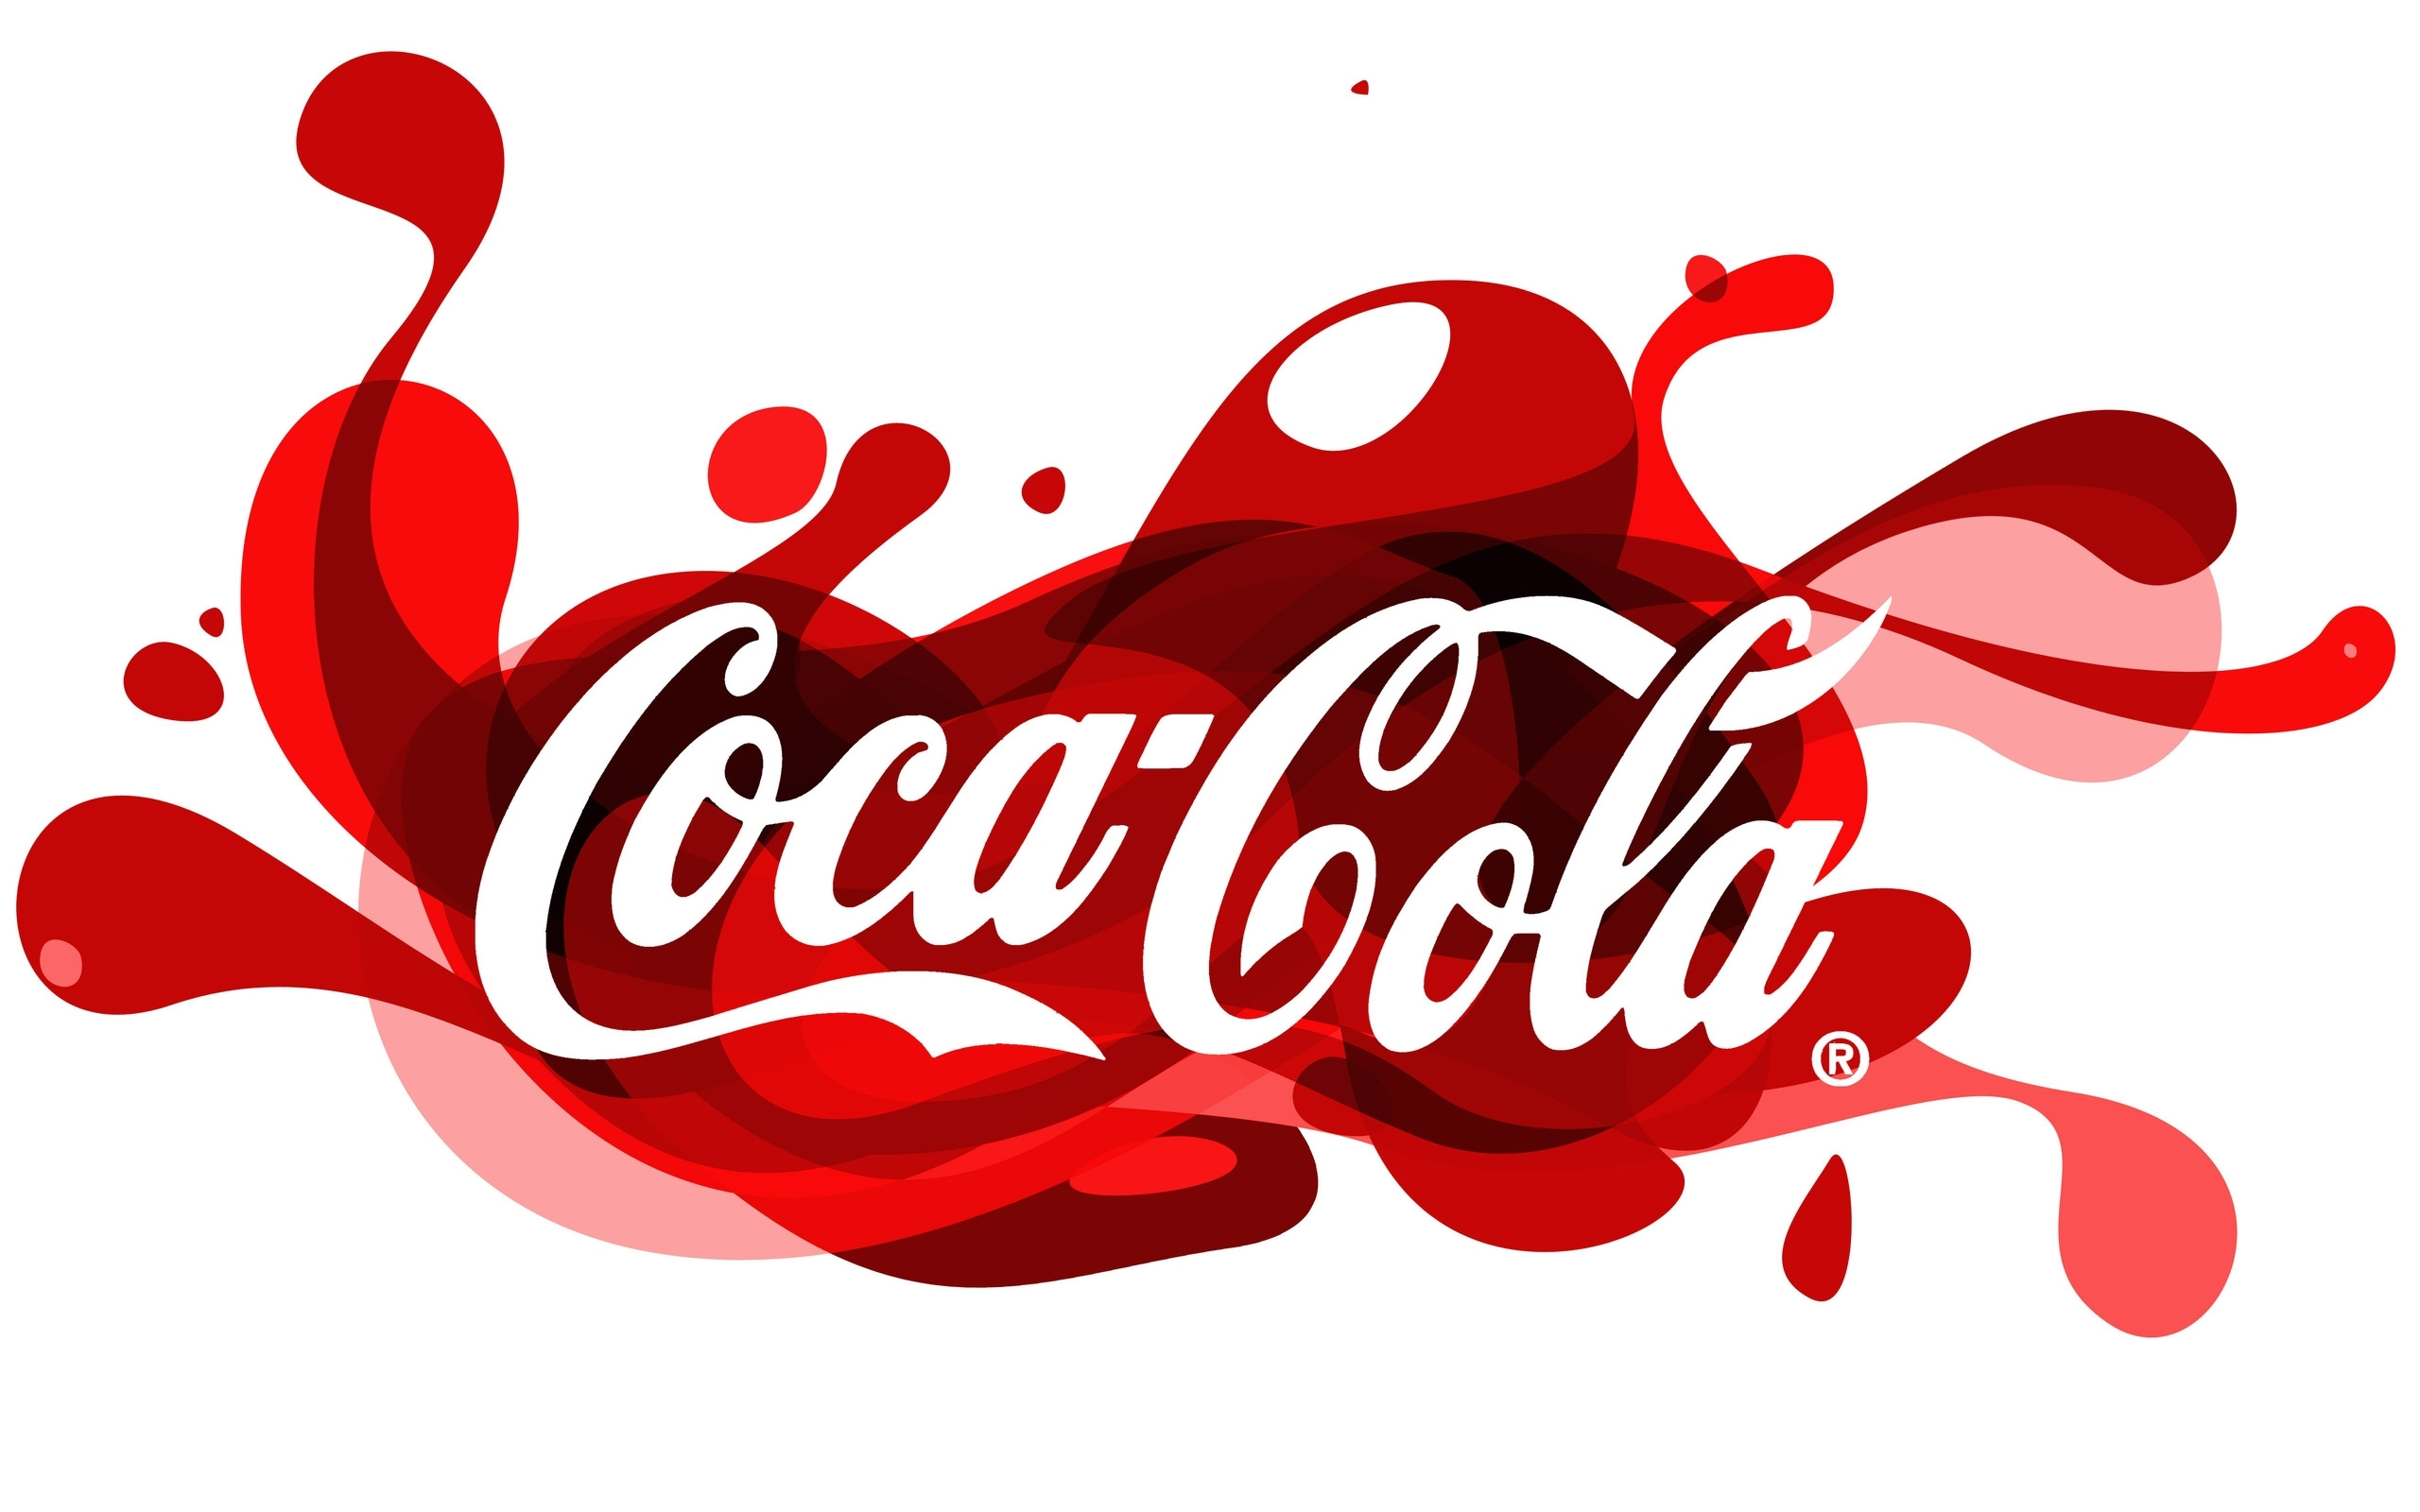 theory for coca cola Case study: coca cola integrated marketing communications published on march 11, 2015  coca-cola's 'america the beautiful' super bowl ad causes stir - ictmncom retrieved february 28 .